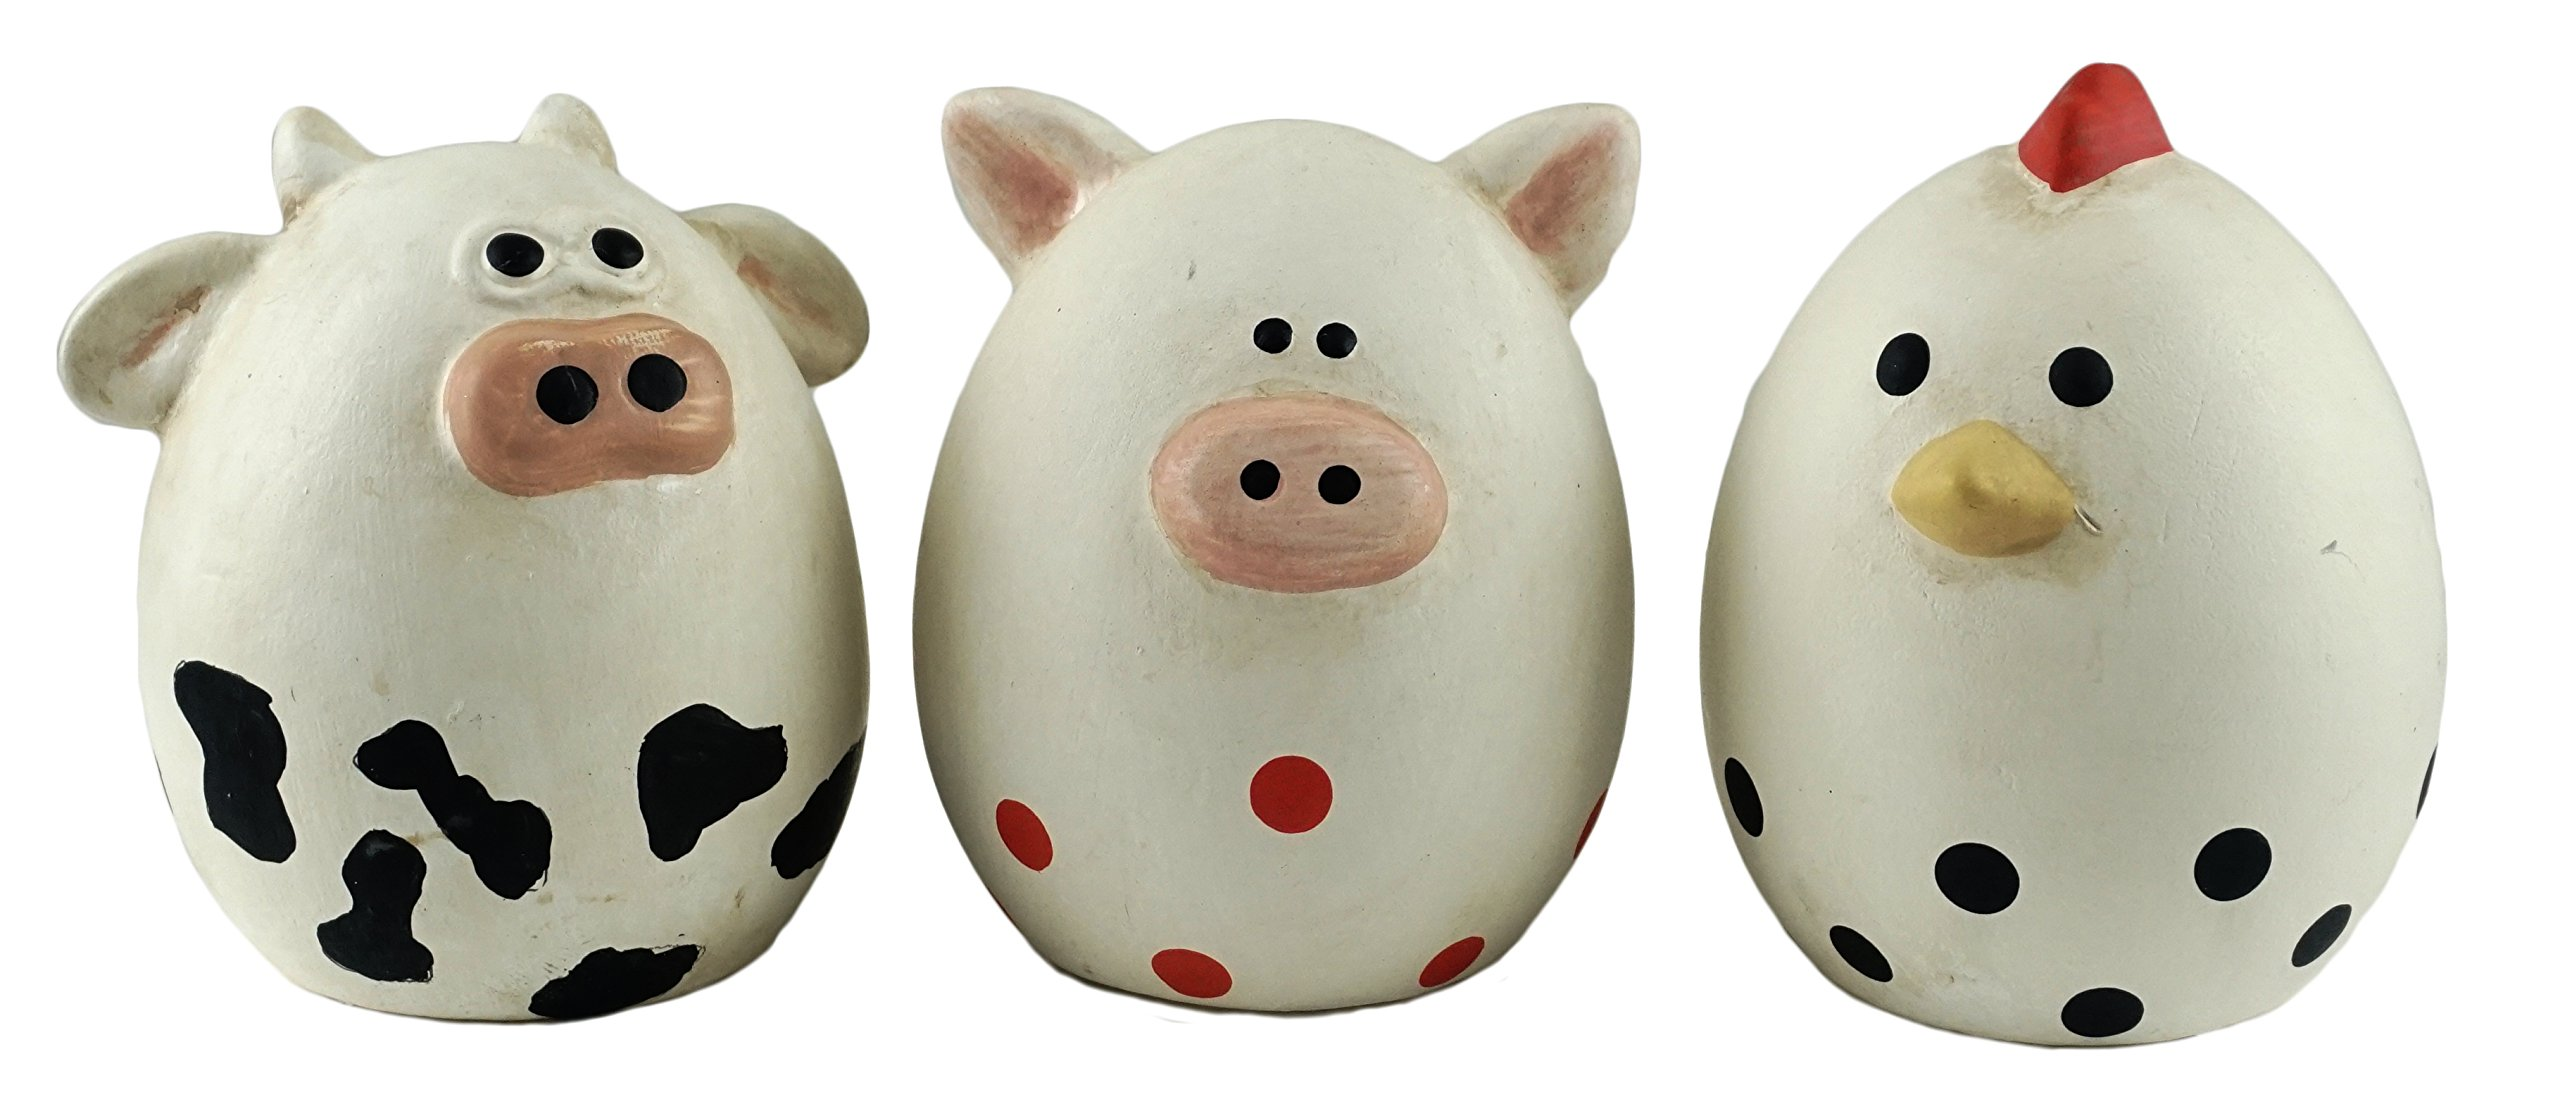 Party Explosions® Farm Animal Egg Shaped Figurines - Set of 3